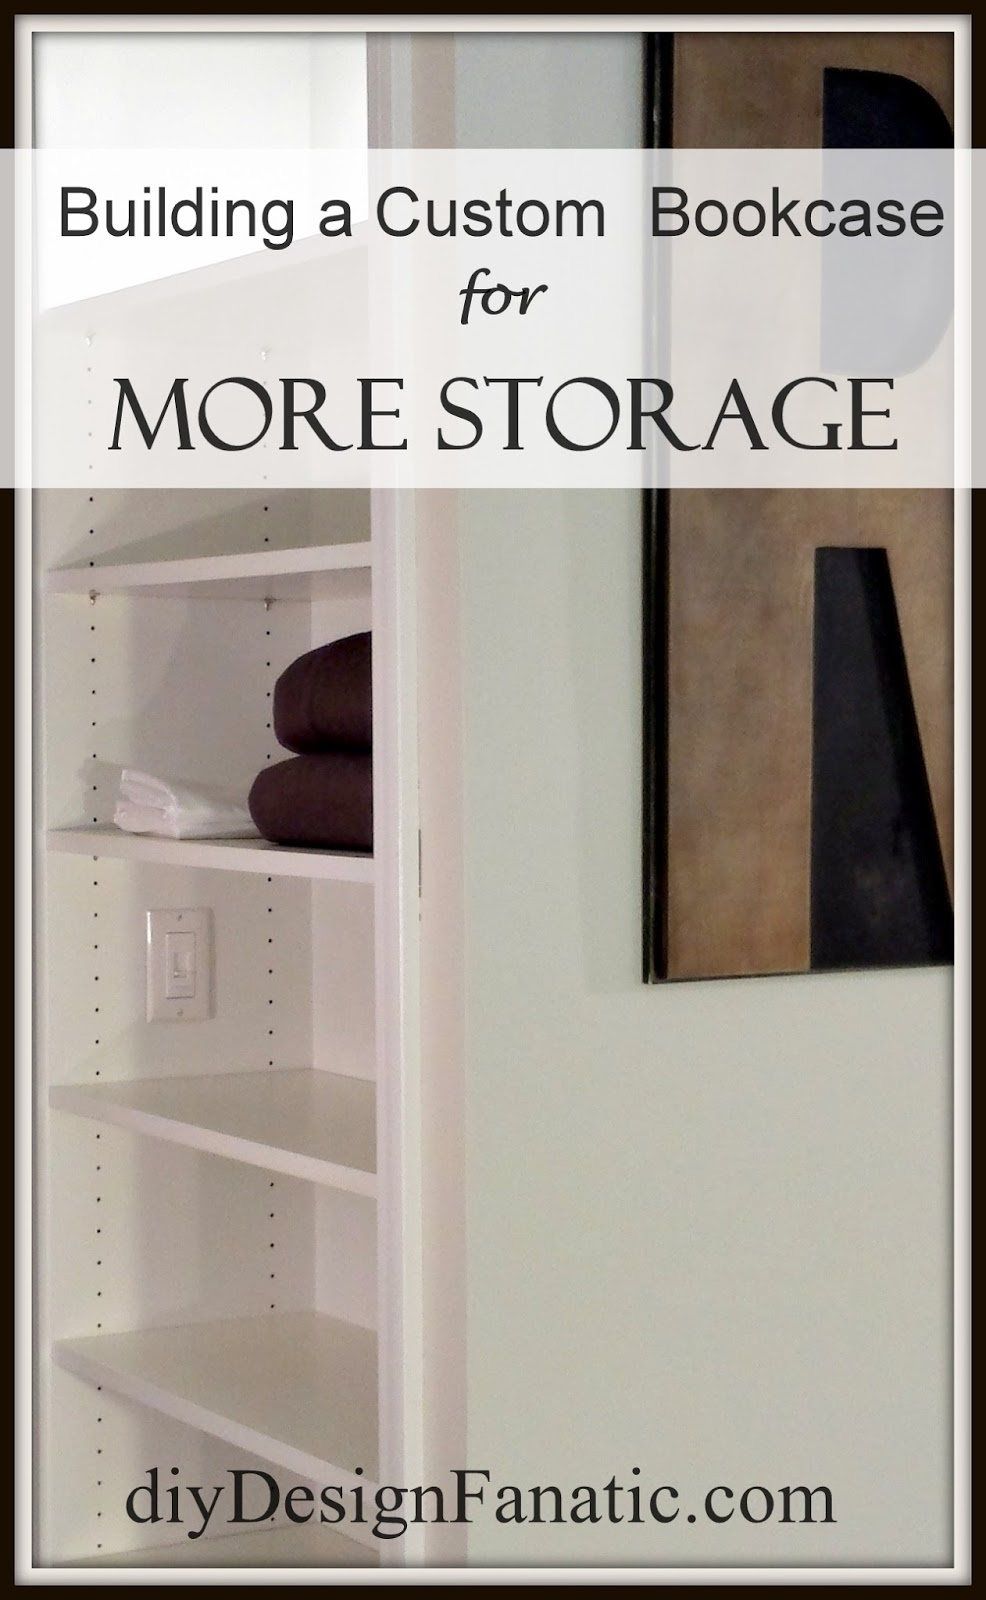 build a closet, Closet organization, closet storage, storage, custom closet, diy, bookcases, storages shelves